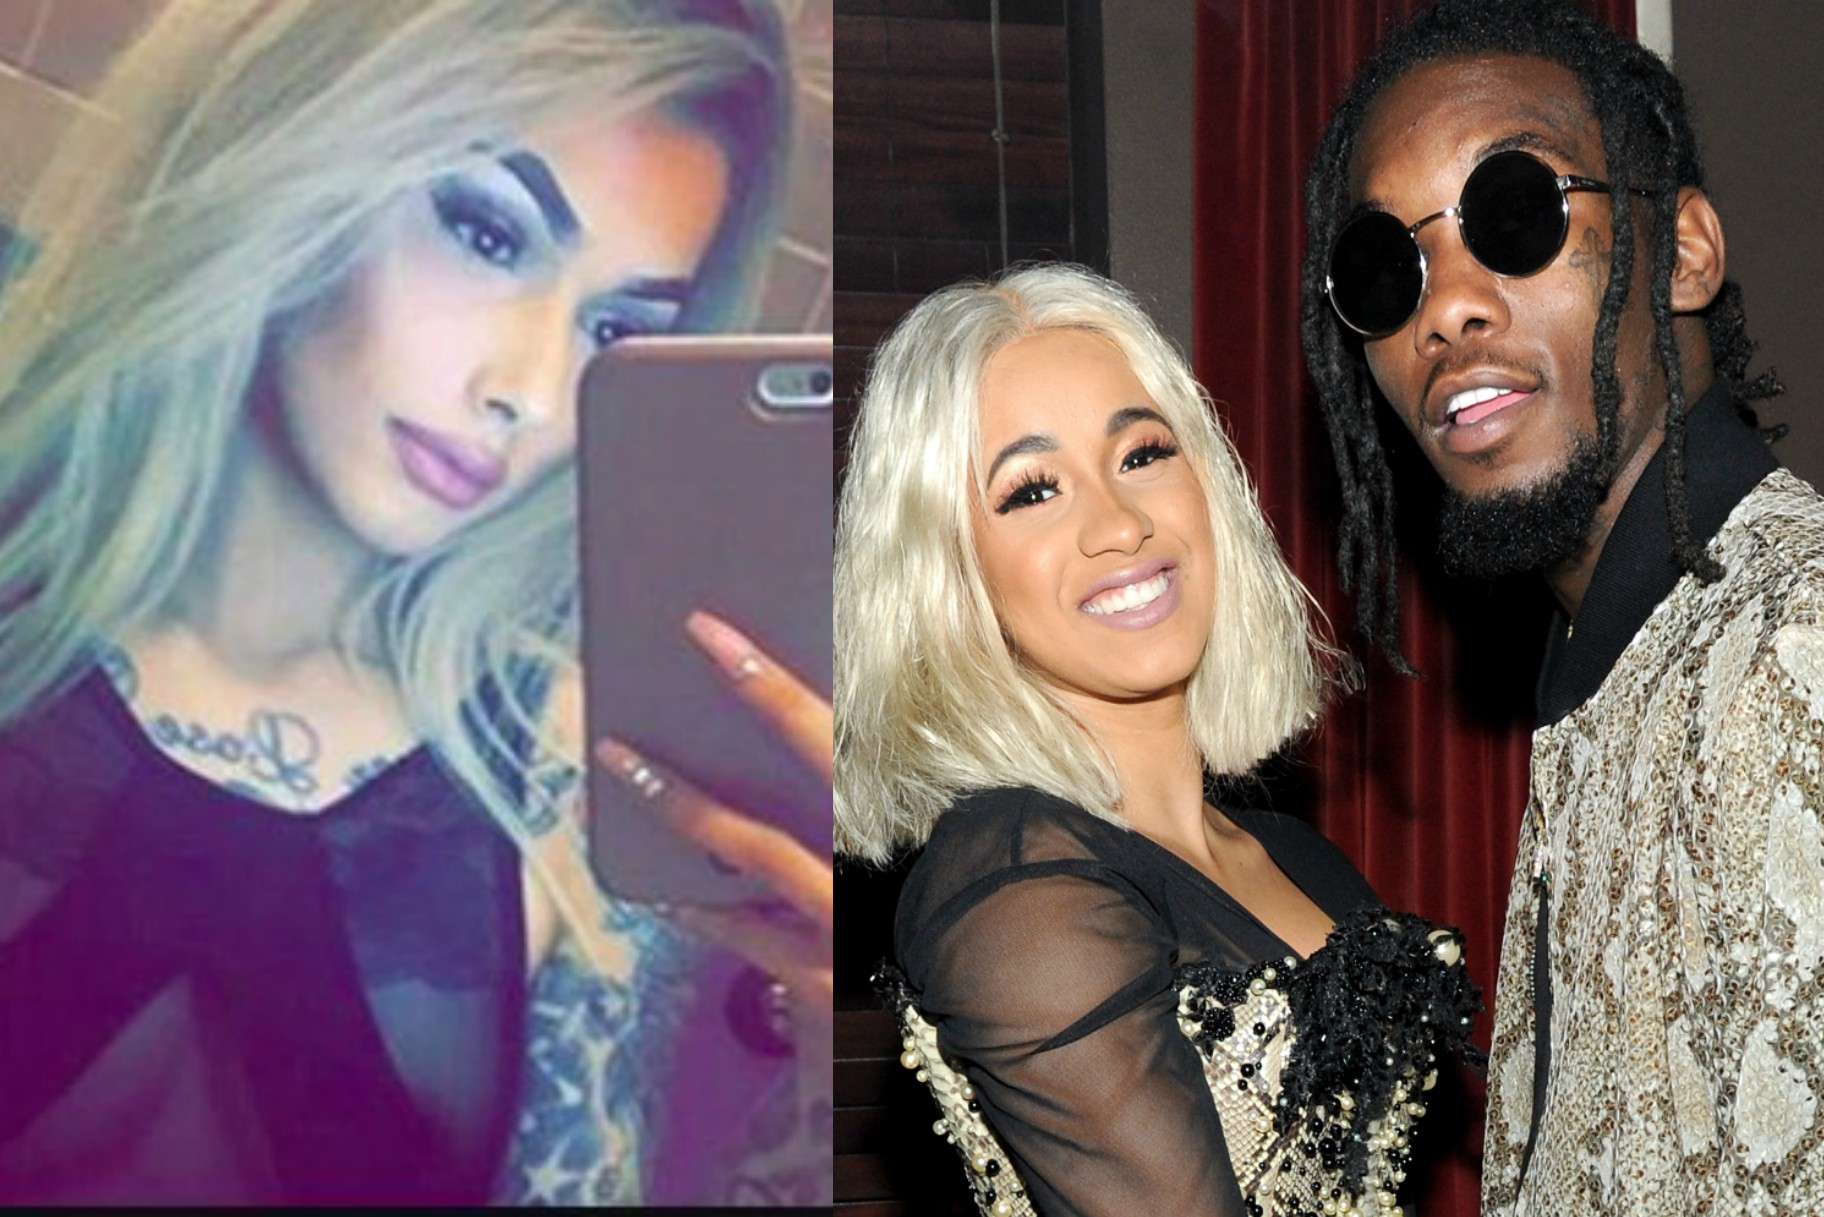 Offset S Is Still Cheating On Cardi B With Some Self: Woman Claims Cardi B's Fiancé Offset Got Her Pregnant